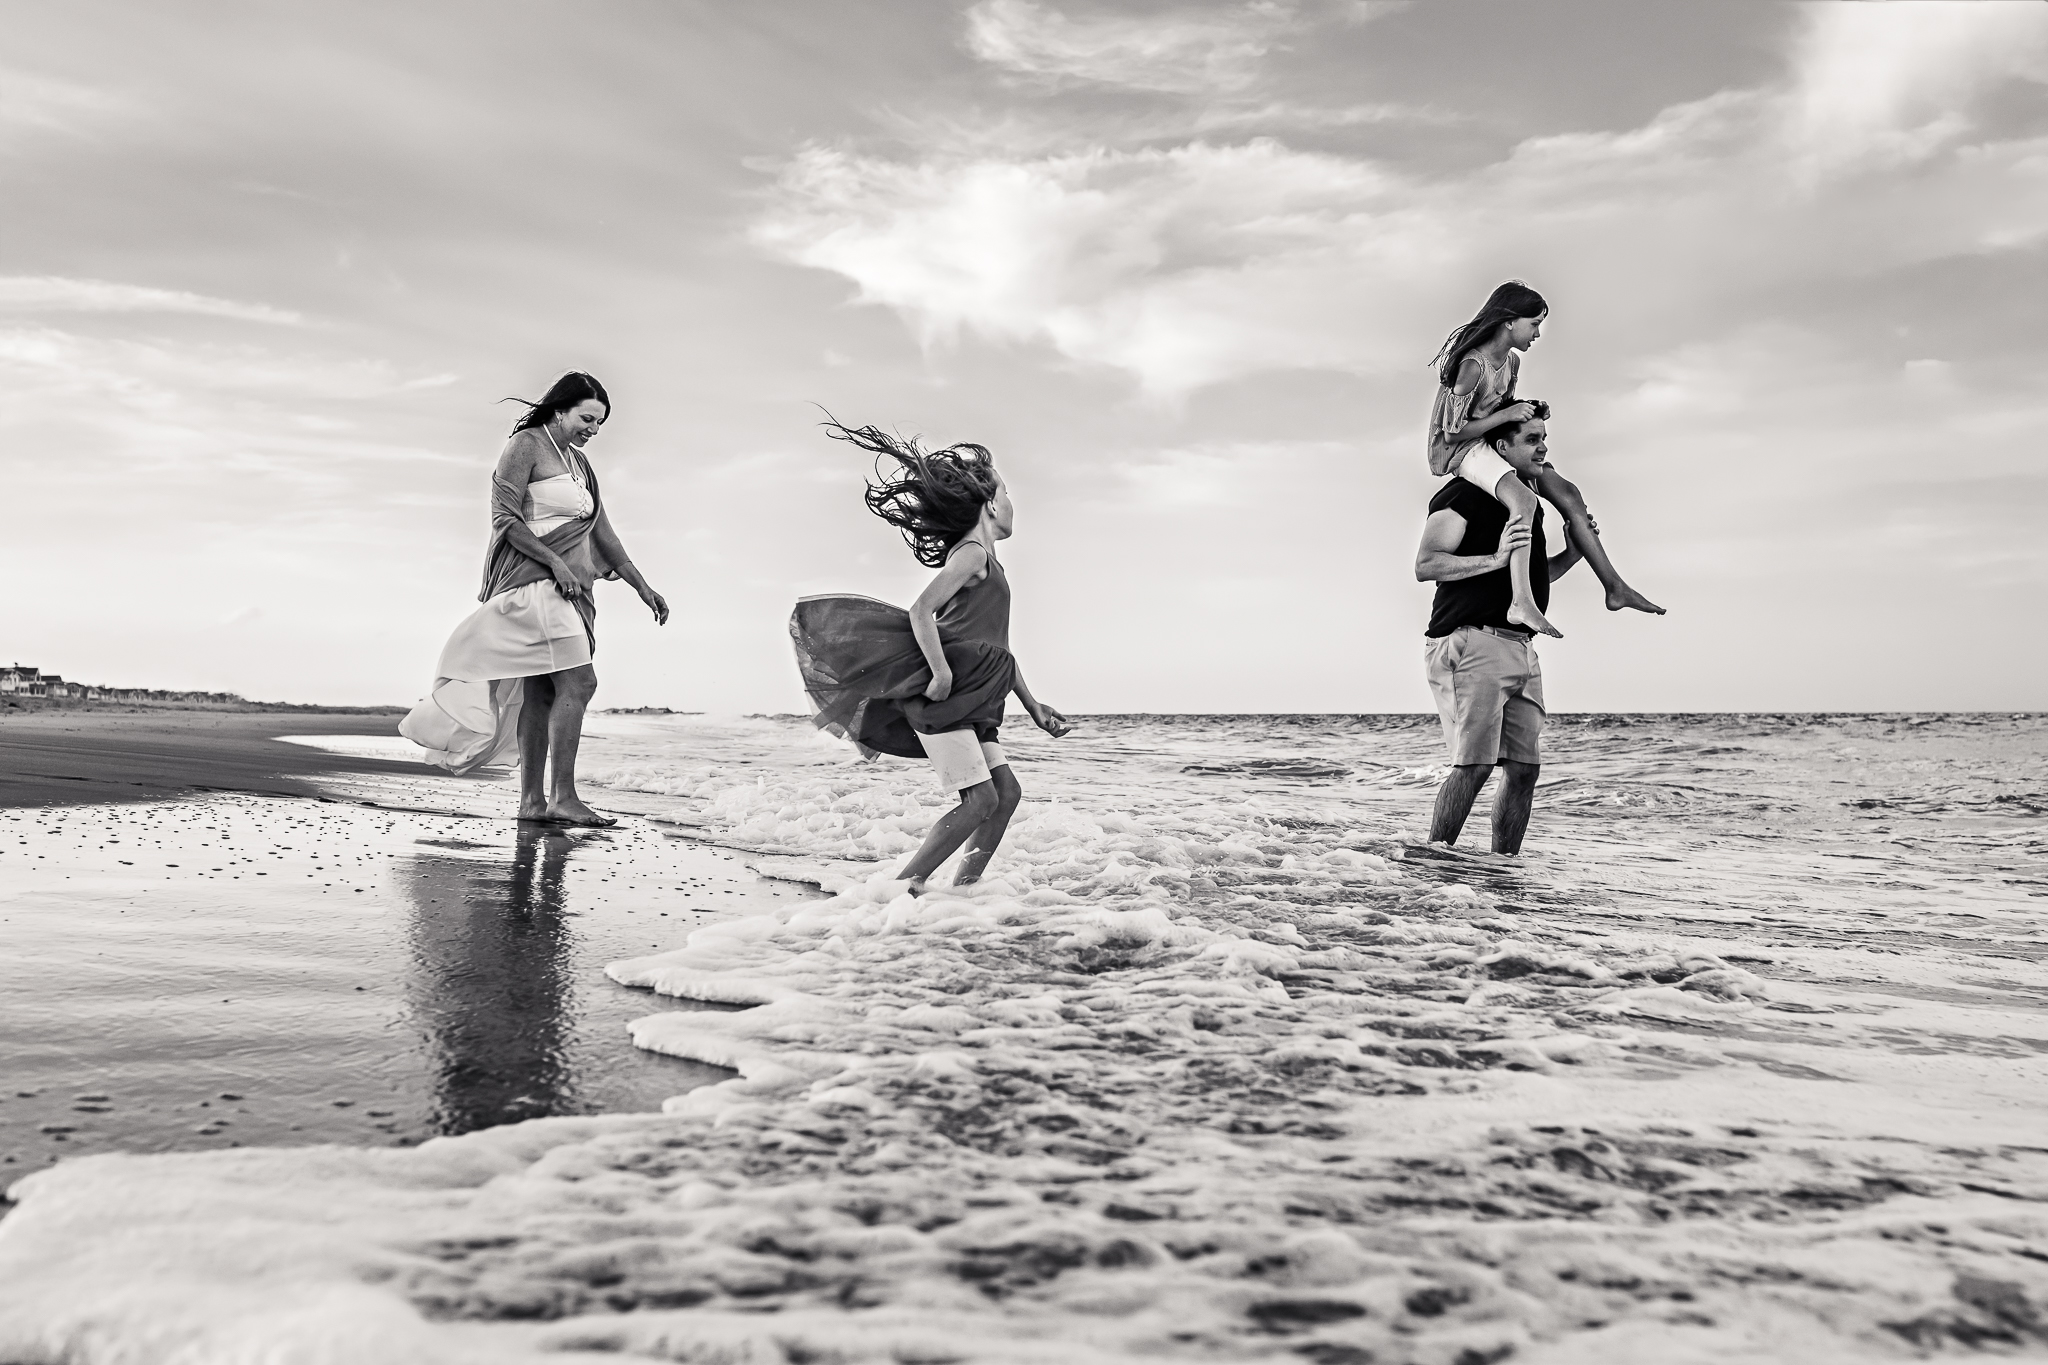 NancyElizabethPhotography, South Jersey Photographer, Family Walking in Ocean